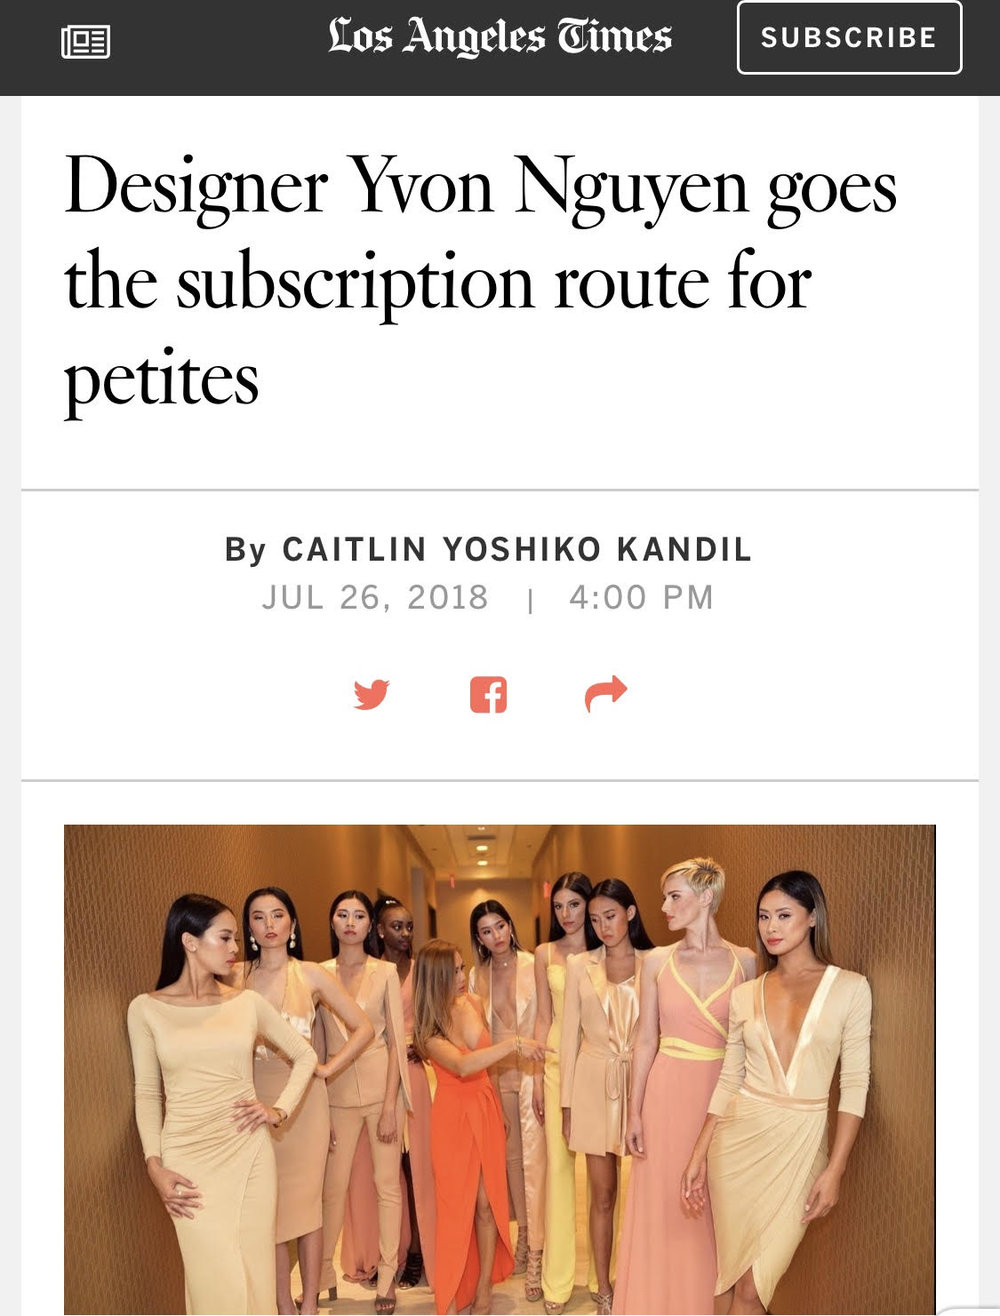 "LA Times - Now, Nguyen, who is entirely self-taught, is introducing a new venture — a subscription service for clients to receive individually designed and tailored pieces each month for a flat fee. While women's clothing subscriptions have become popular in recent years, Nguyen said that hers distinguishes itself in quality and personalization. Nothing is mass-produced, and everything is made-to-order with the specific client in mind.""We want to be the go-to for busy, successful women who can have their own stylist, their own designer, and not worry about having to spend hours at the mall,"" she said."